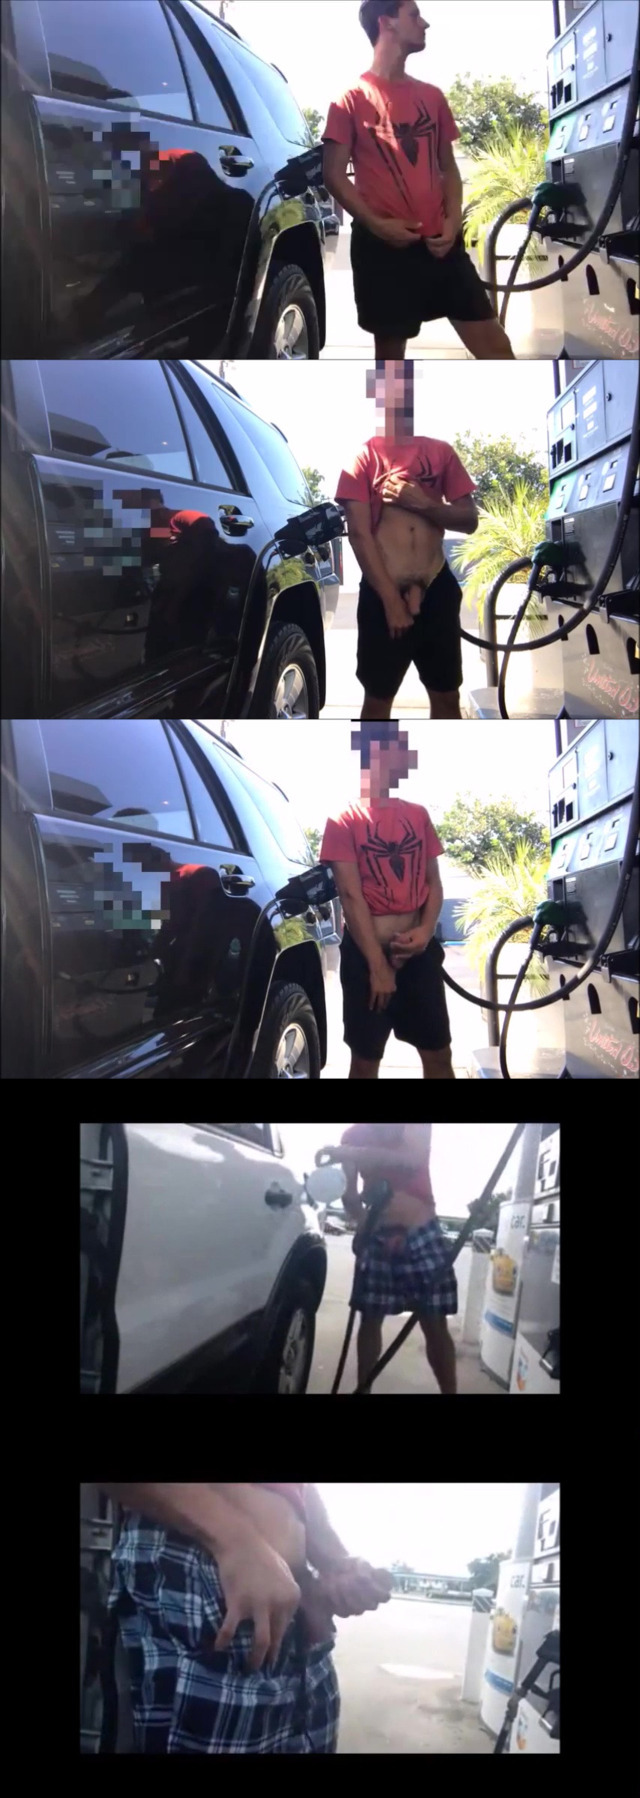 horny guys wanking at the gas station | | spycamfromguys, hidden